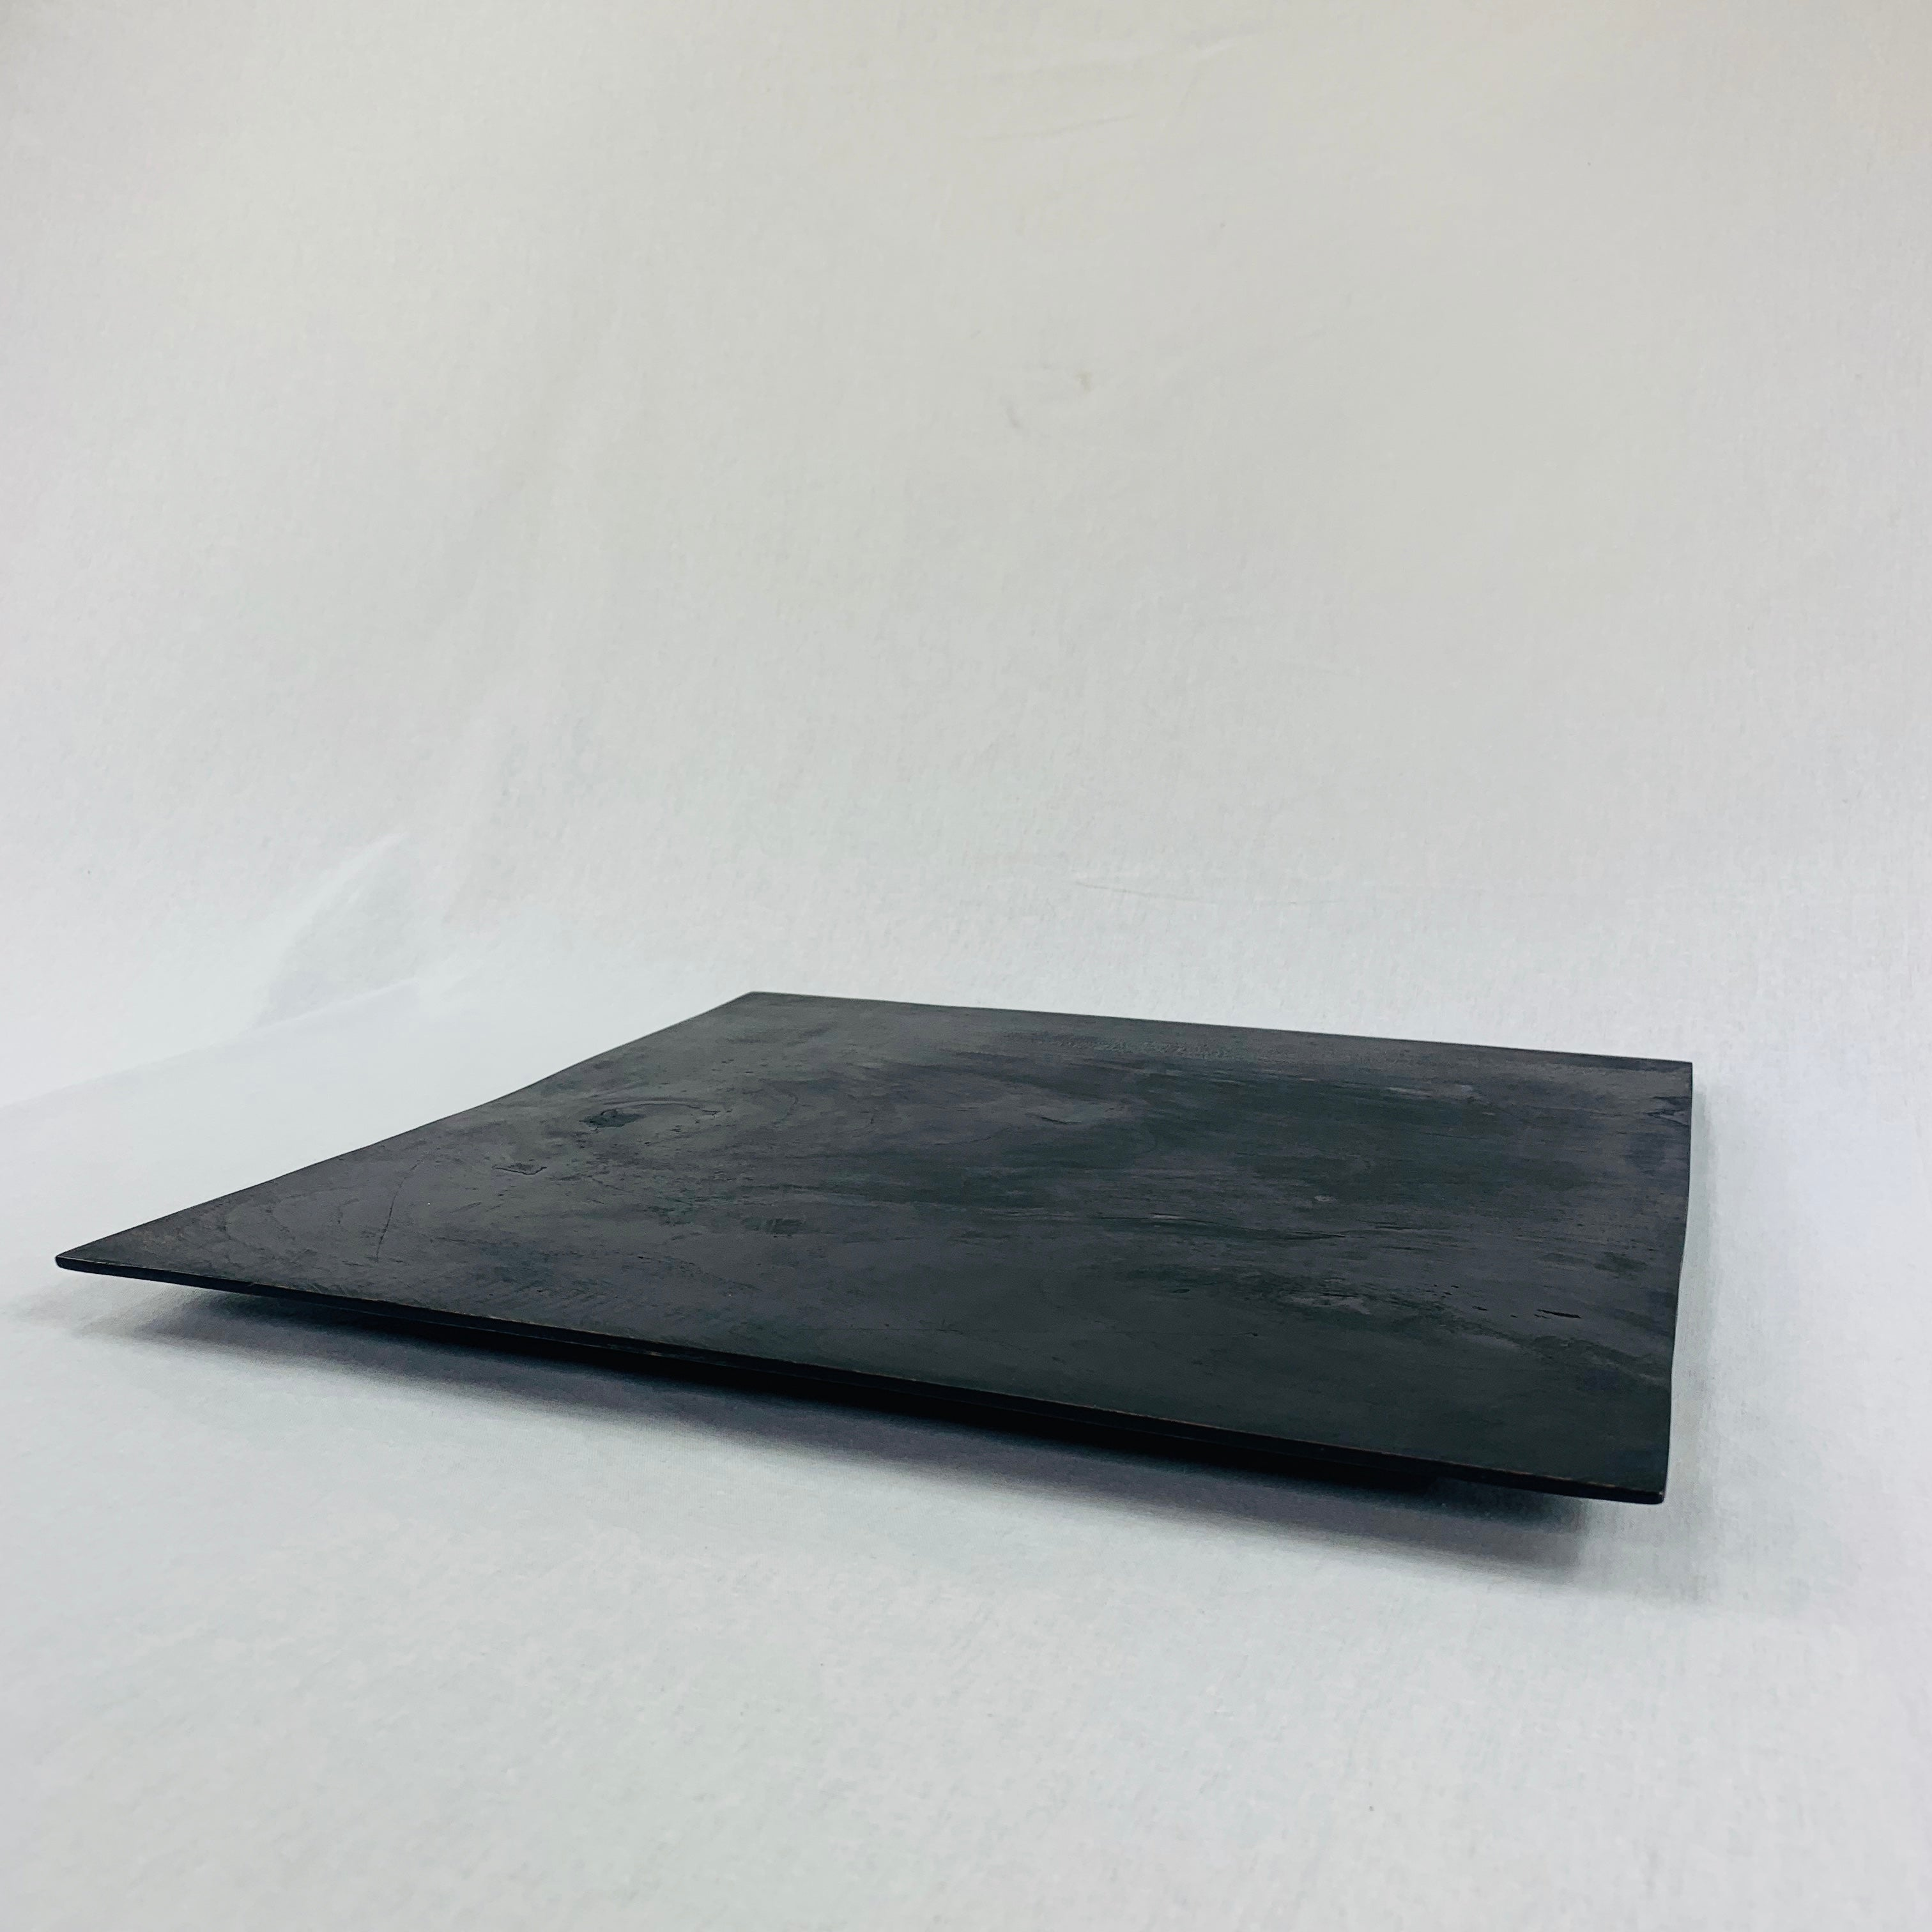 LARGE SQUARE HANDCRAFTED WOODEN TRAY